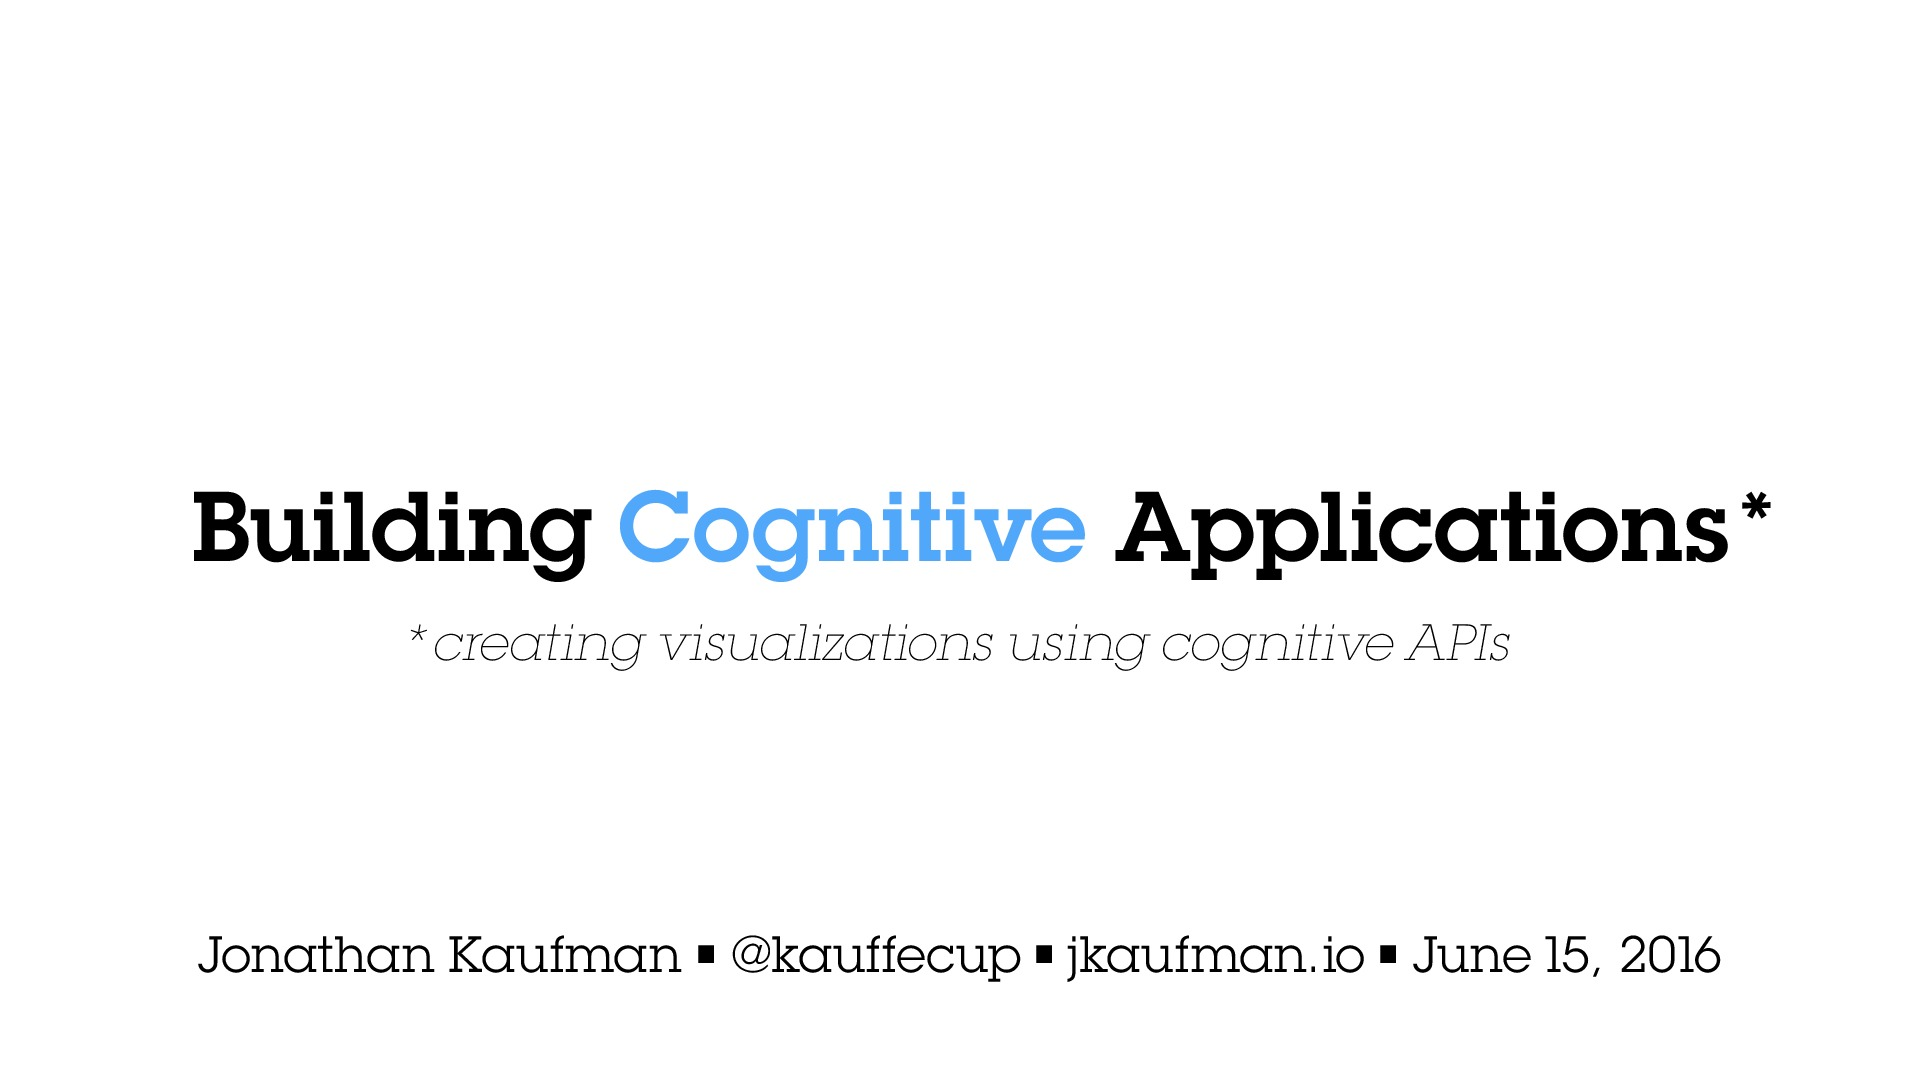 Building Cognitive Applications